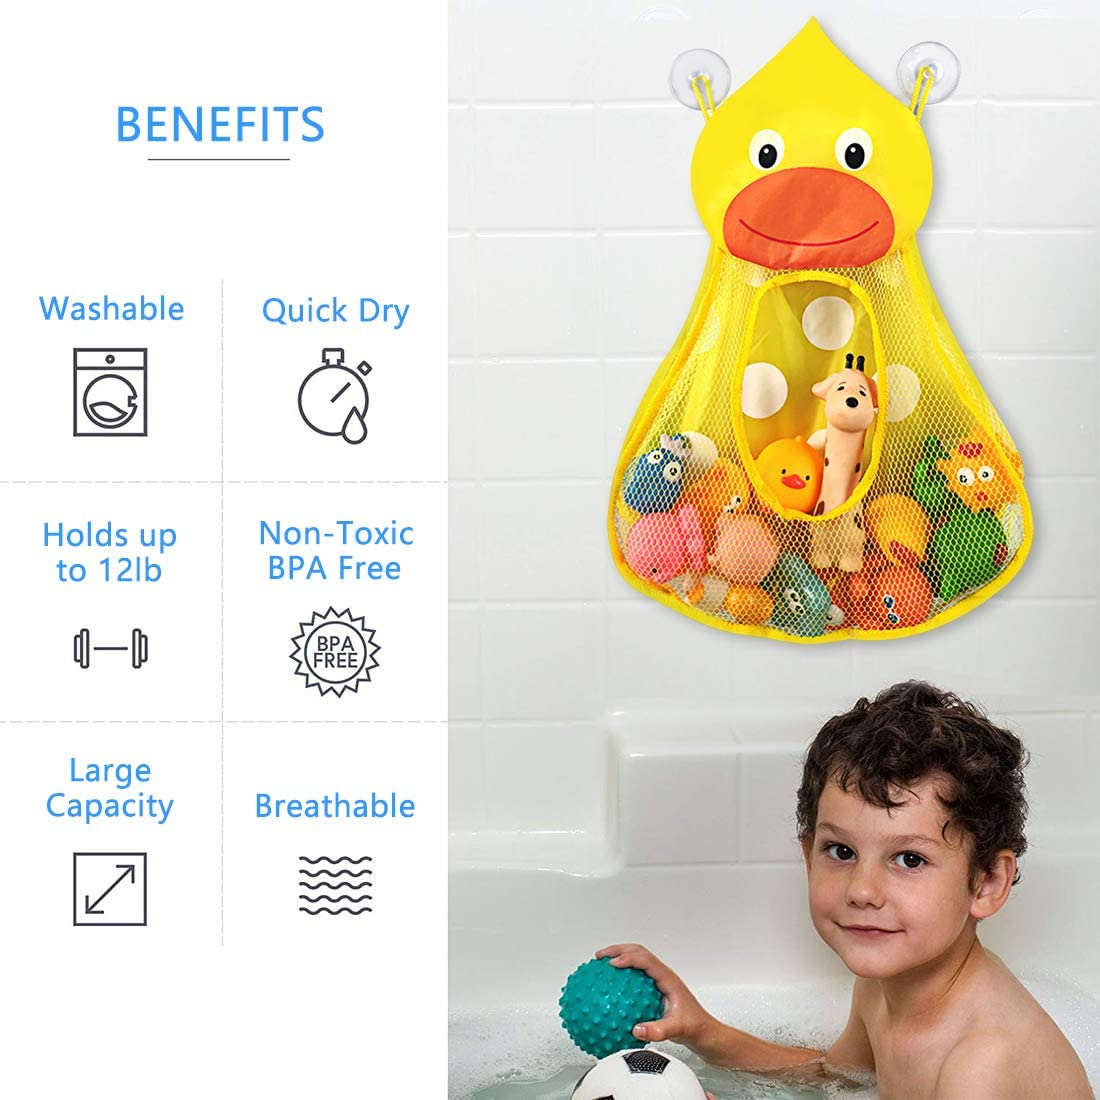 Bath Toy Net Storage Holder with Adhesive and 2 Suction Cup Hooks LinkIdea Bath Toy Organizer Bathtub Toy Organizer Holder 2pcs, Yellow